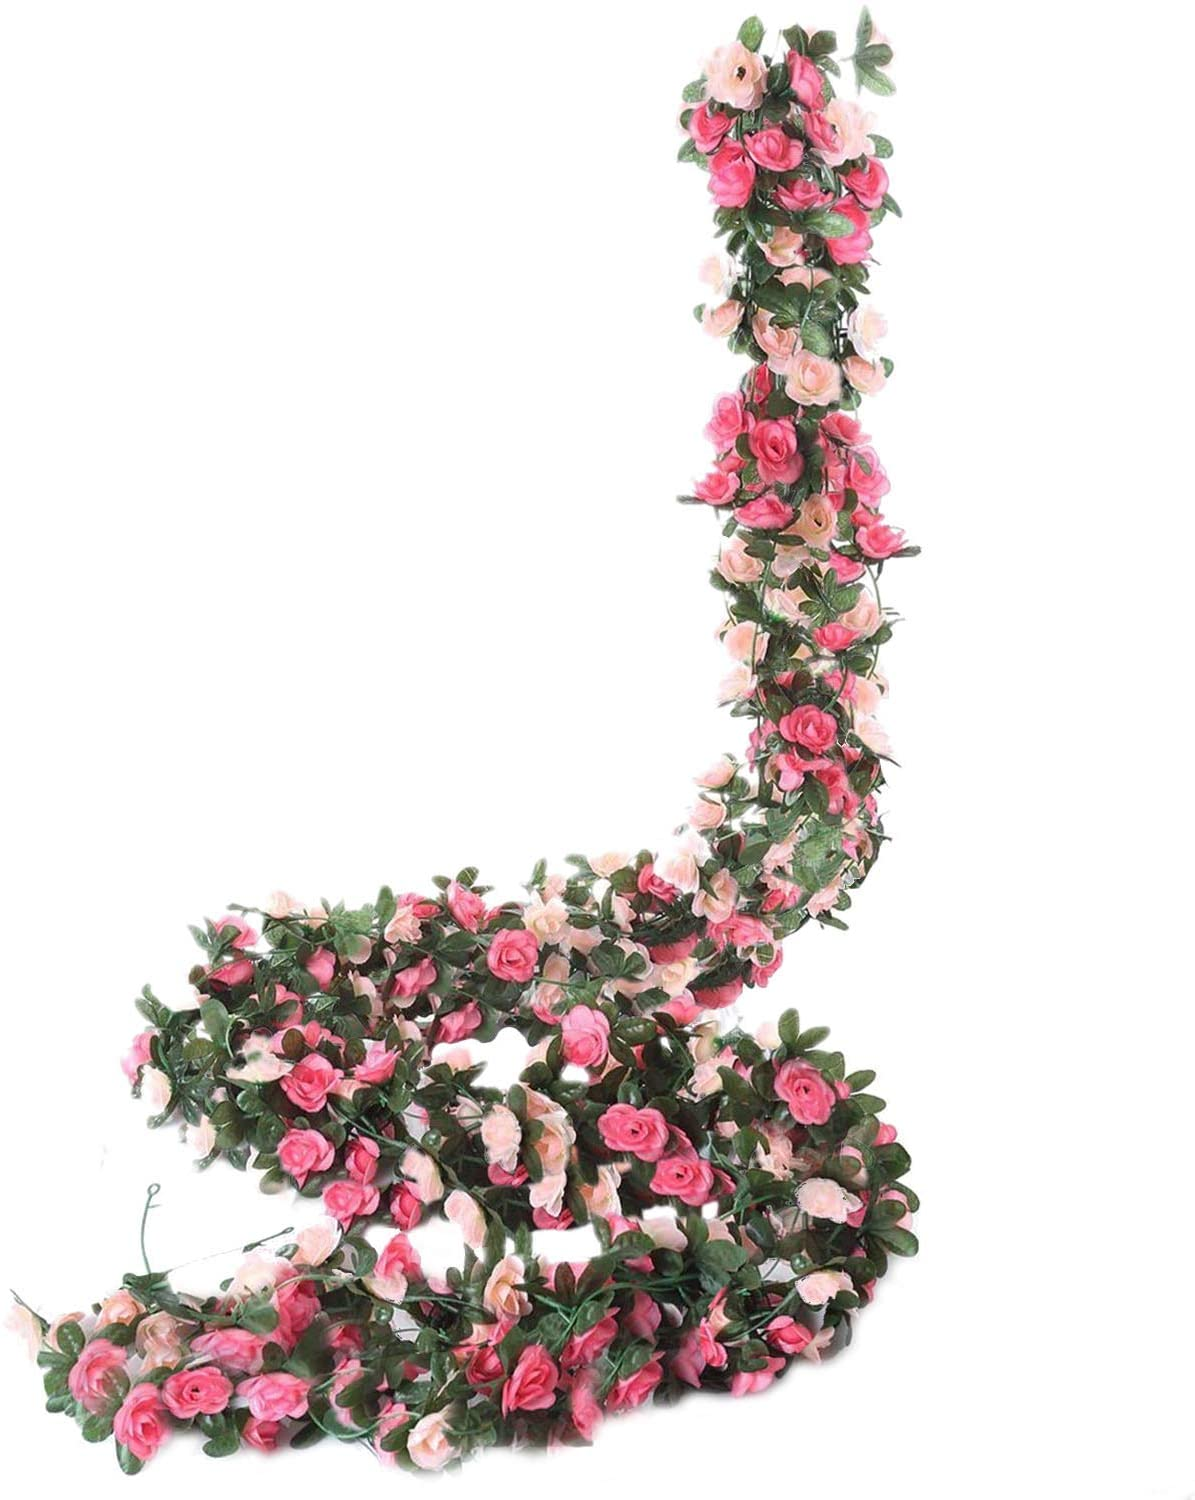 Miracliy 8 pcs 66 FT Flower Garland Fake Rose Vine Artificial Flower Hanging Rose Ivy Home Hotel Office Wedding Party Garden Craft Art Décor (Pink)